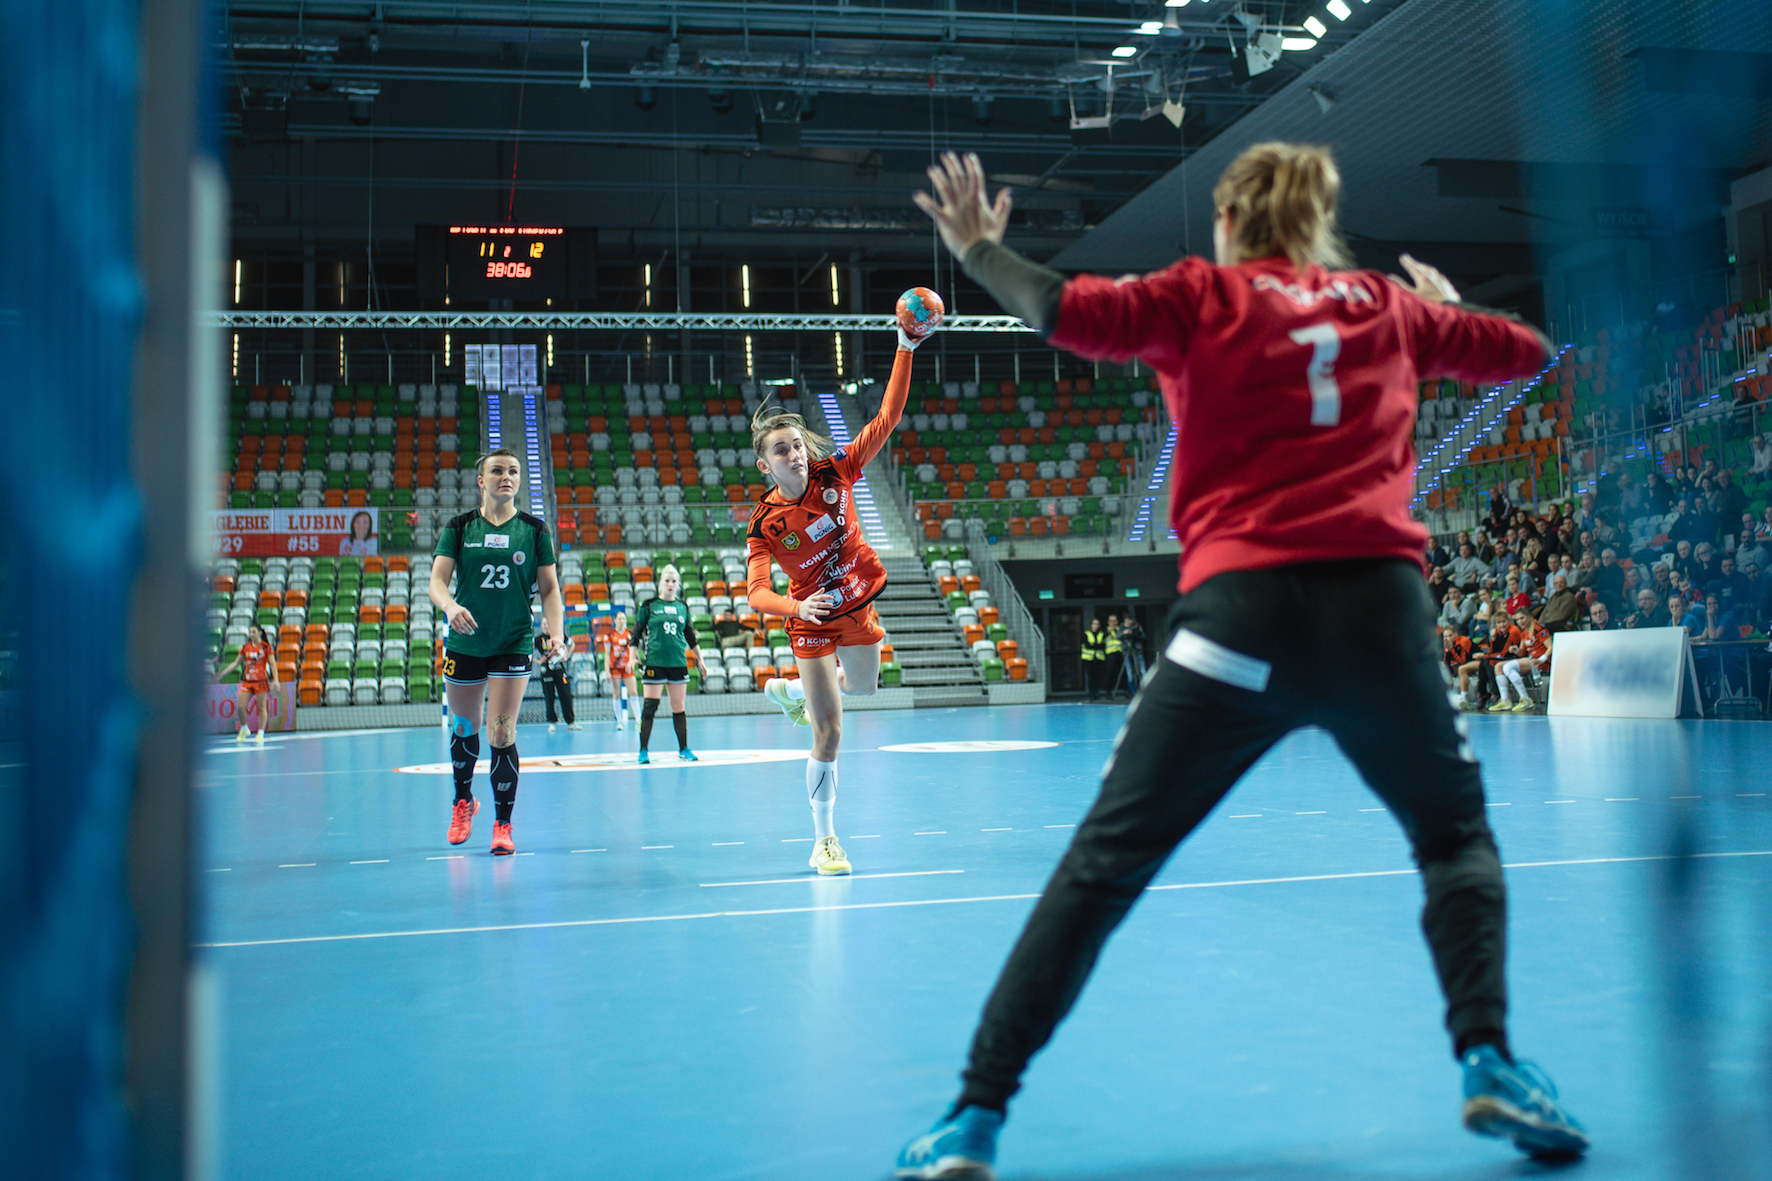 Handball_No_ad (1).jpg